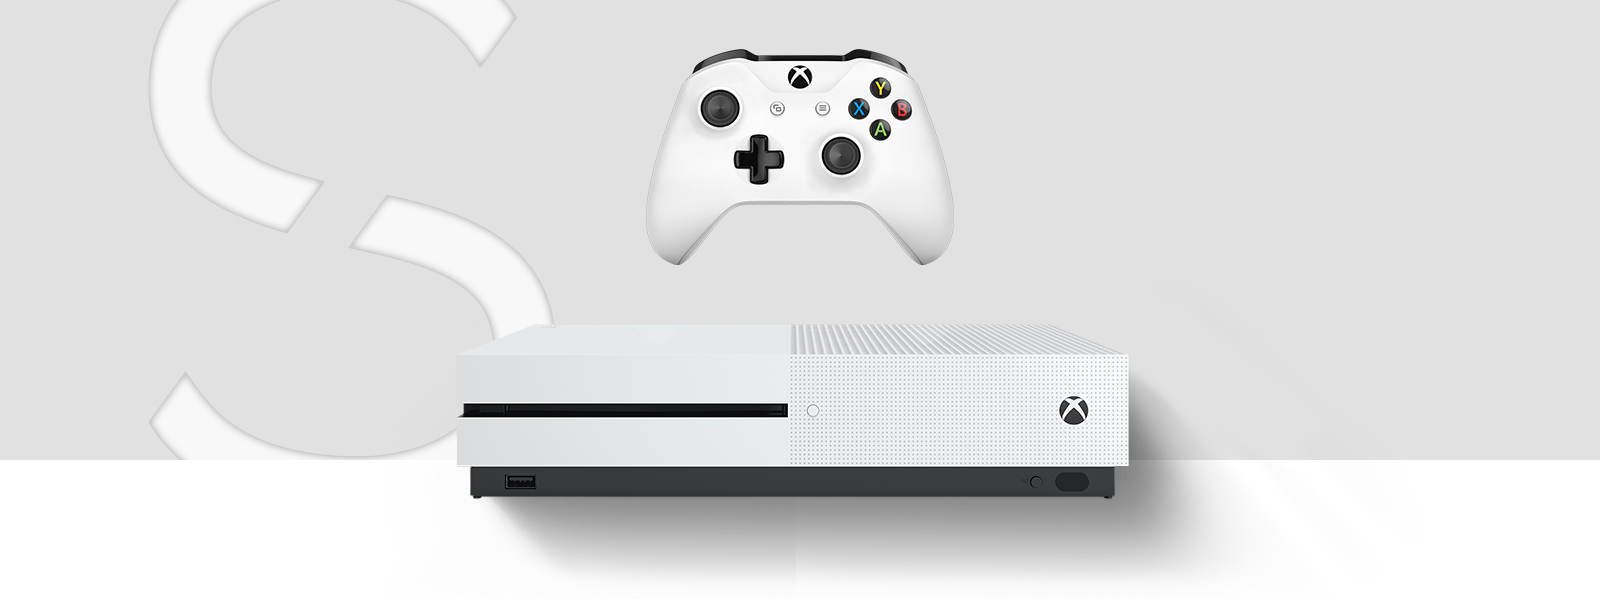 Paquete Xbox One S